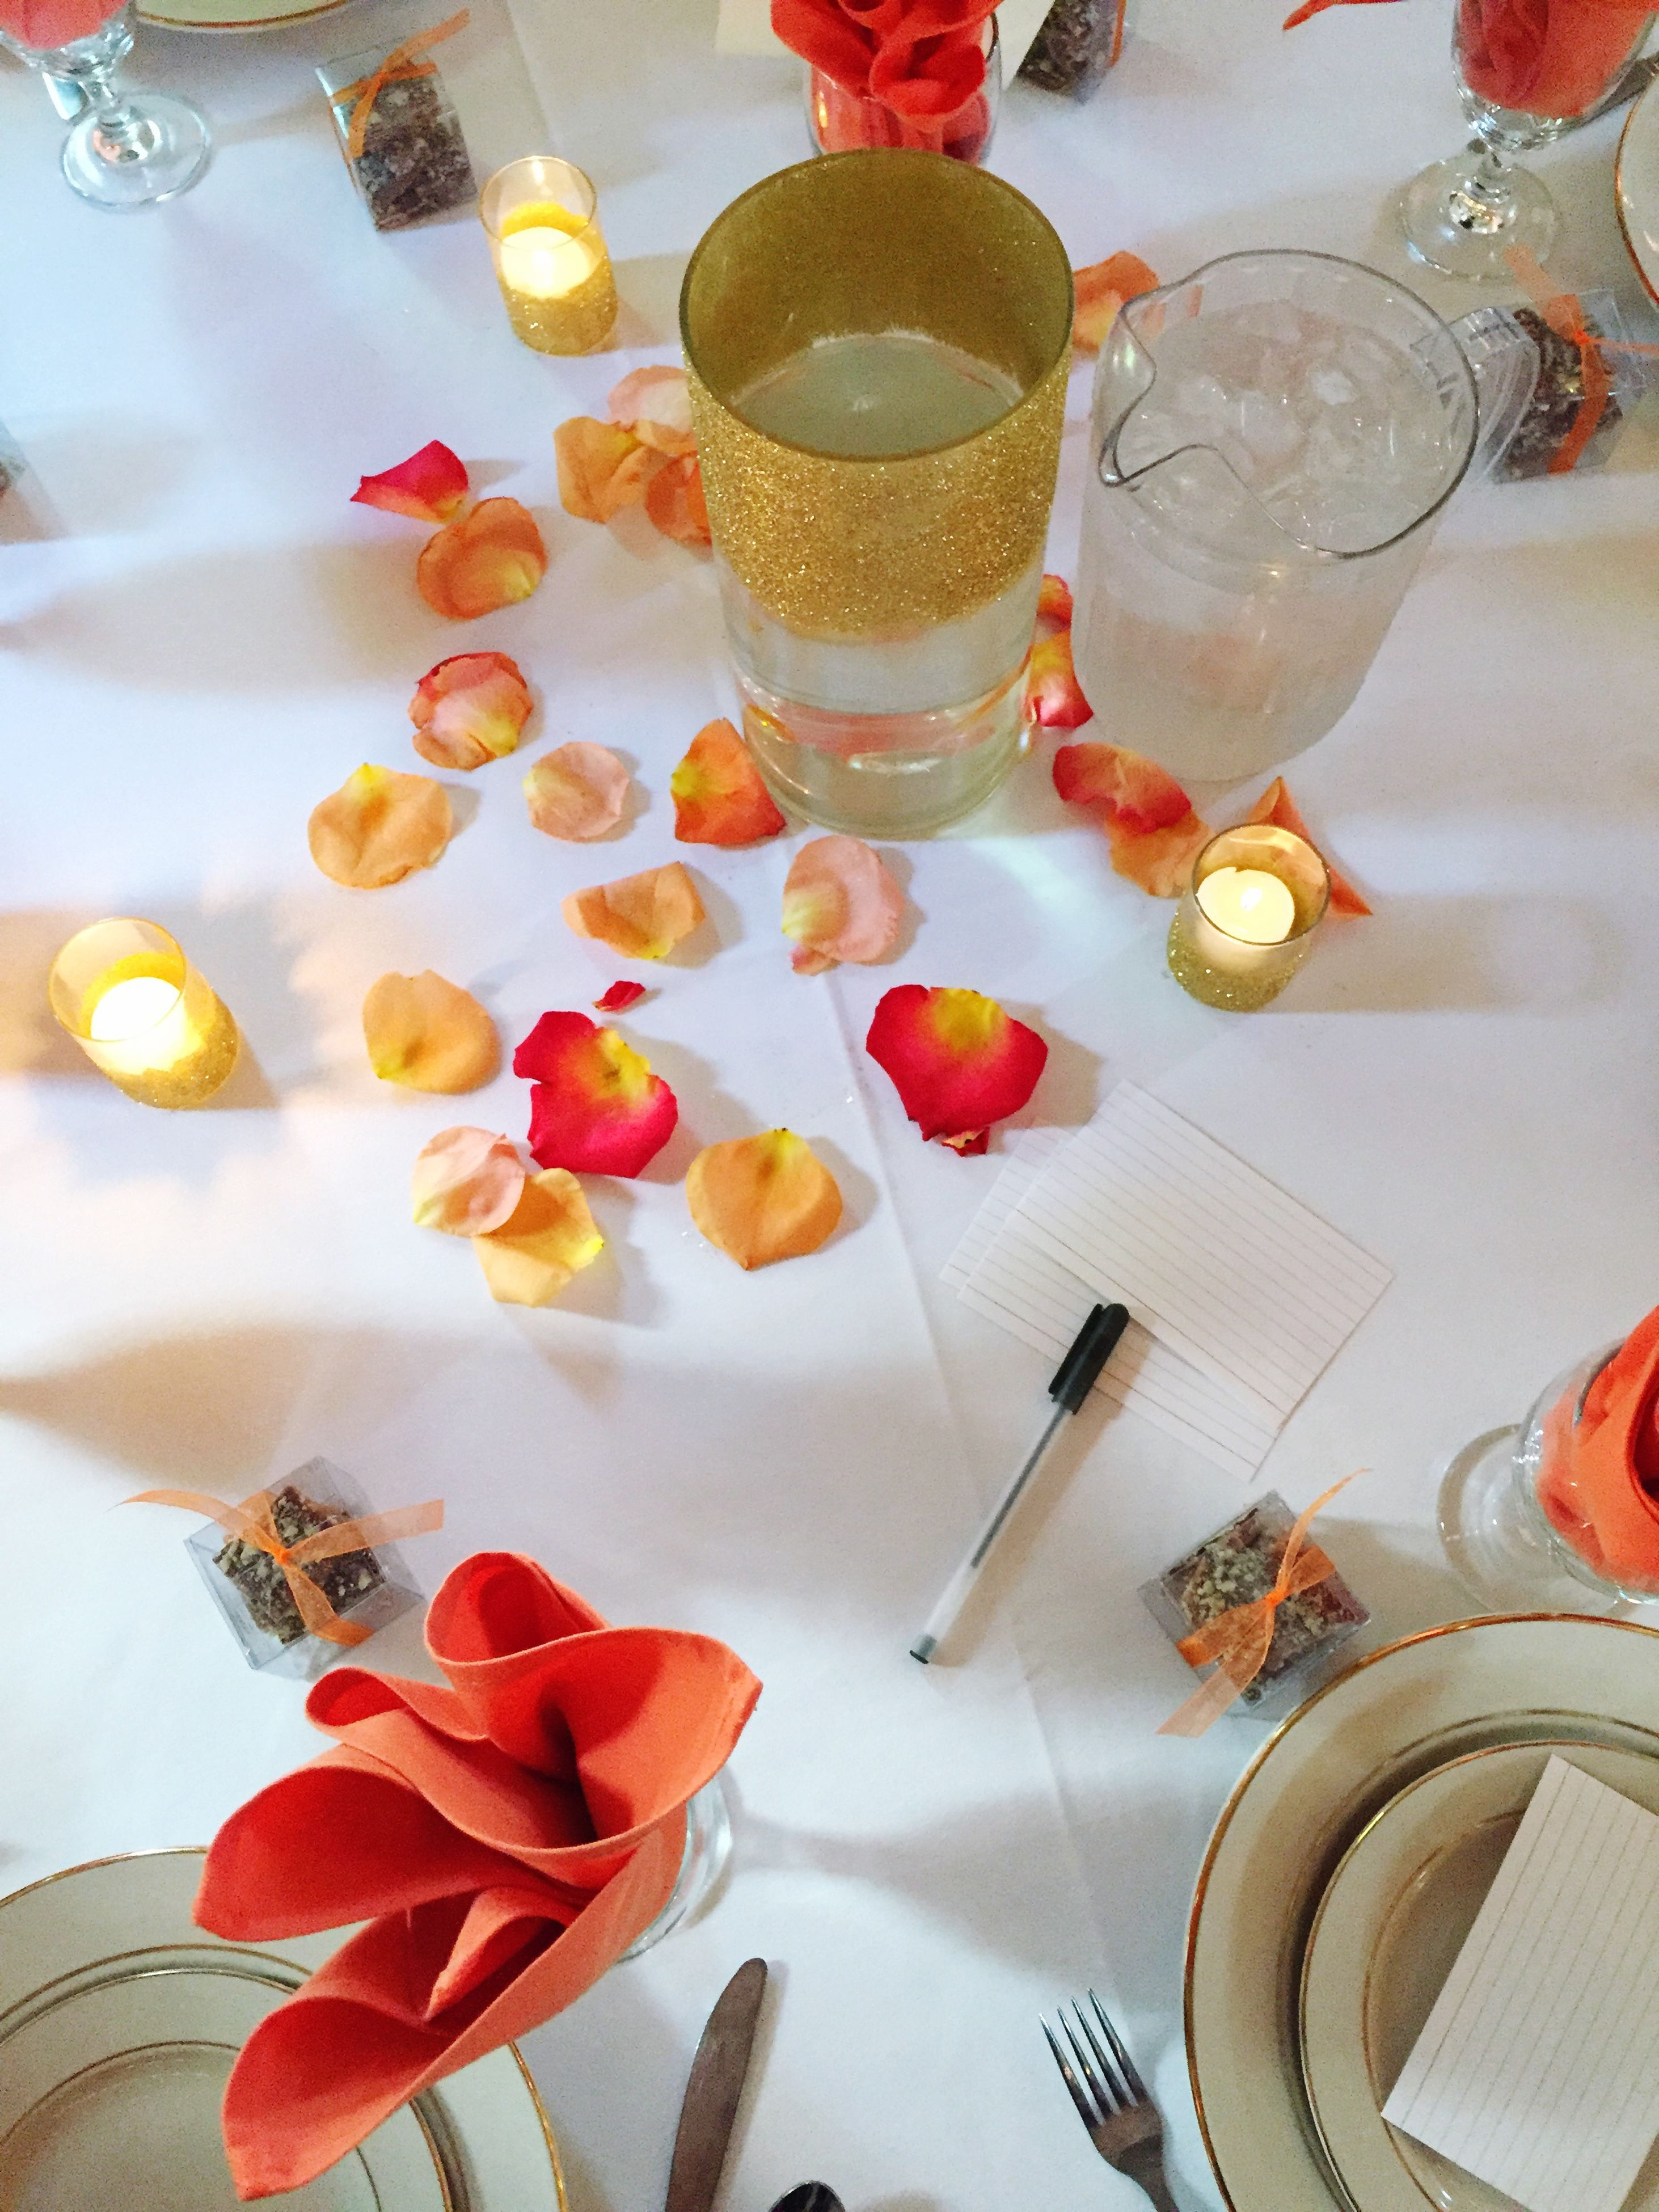 indoors, table, flower, still life, vase, high angle view, decoration, tablecloth, freshness, variation, home interior, plate, arrangement, no people, place setting, dining table, glass - material, multi colored, floral pattern, napkin